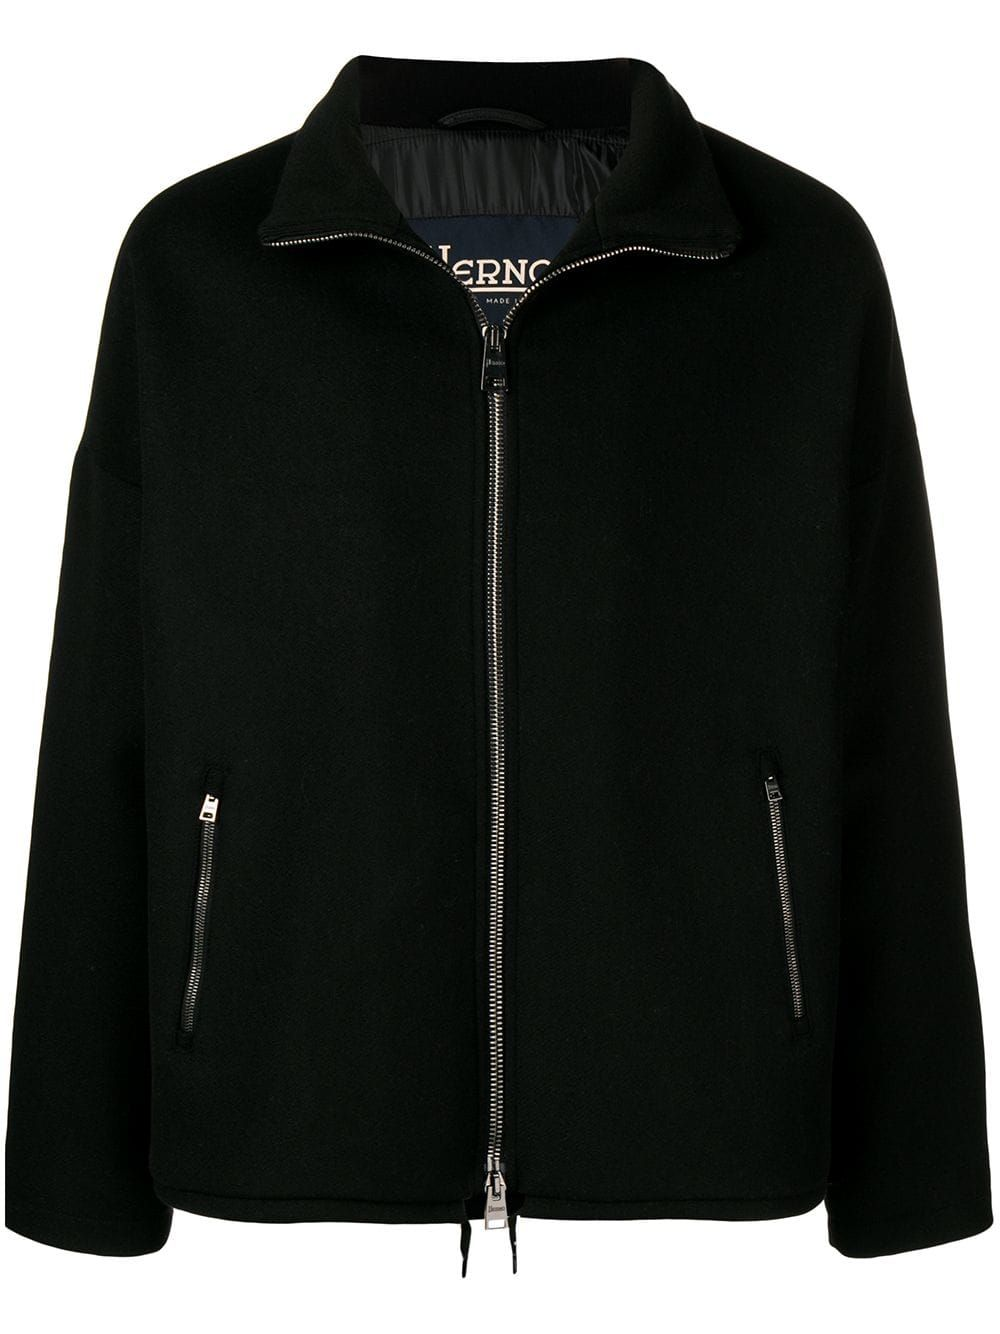 Herno herno zipup fleece jacket black herno cloth herno in